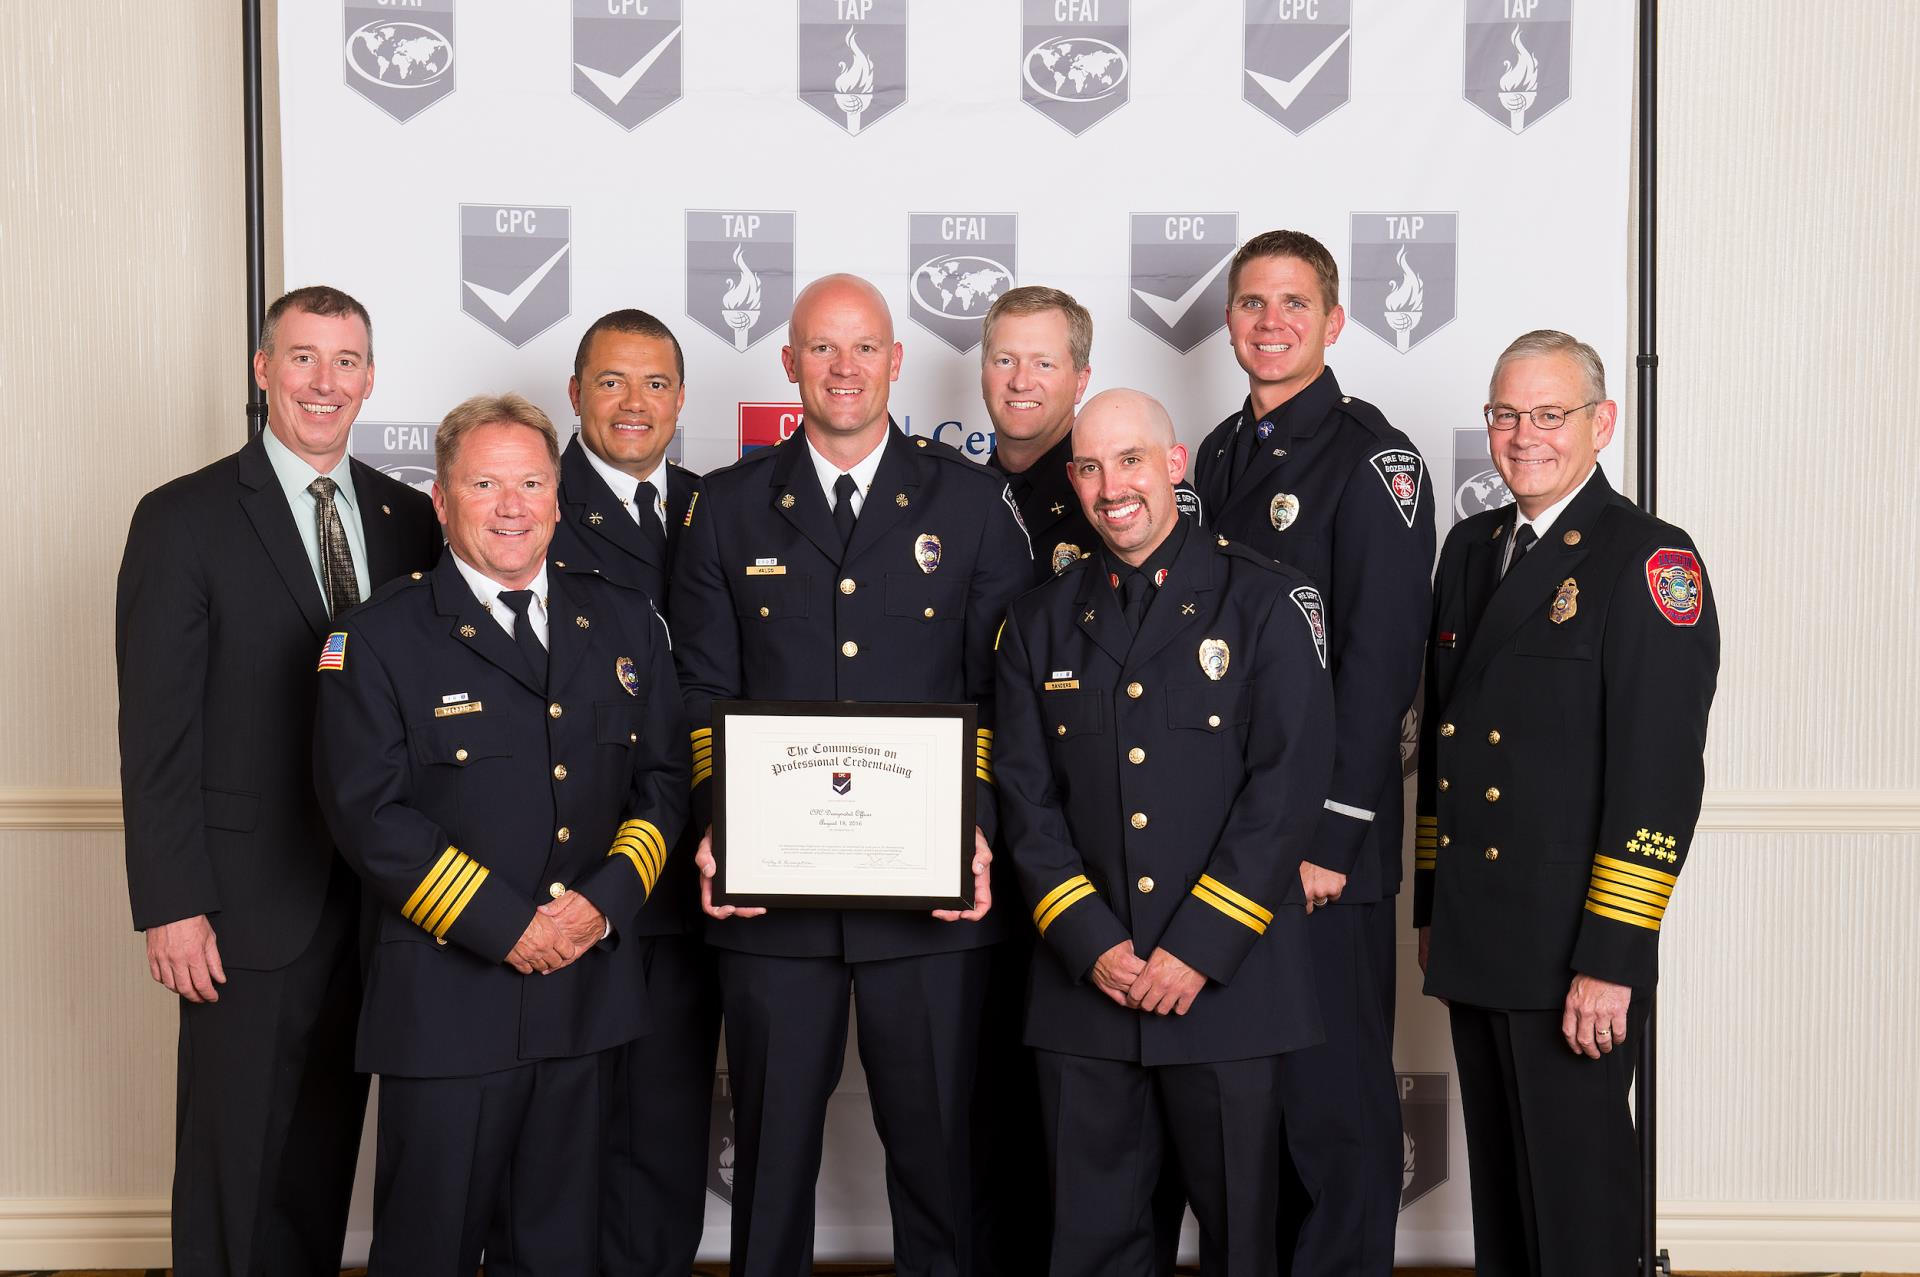 Eight firefighters wearing class A's recieving awards